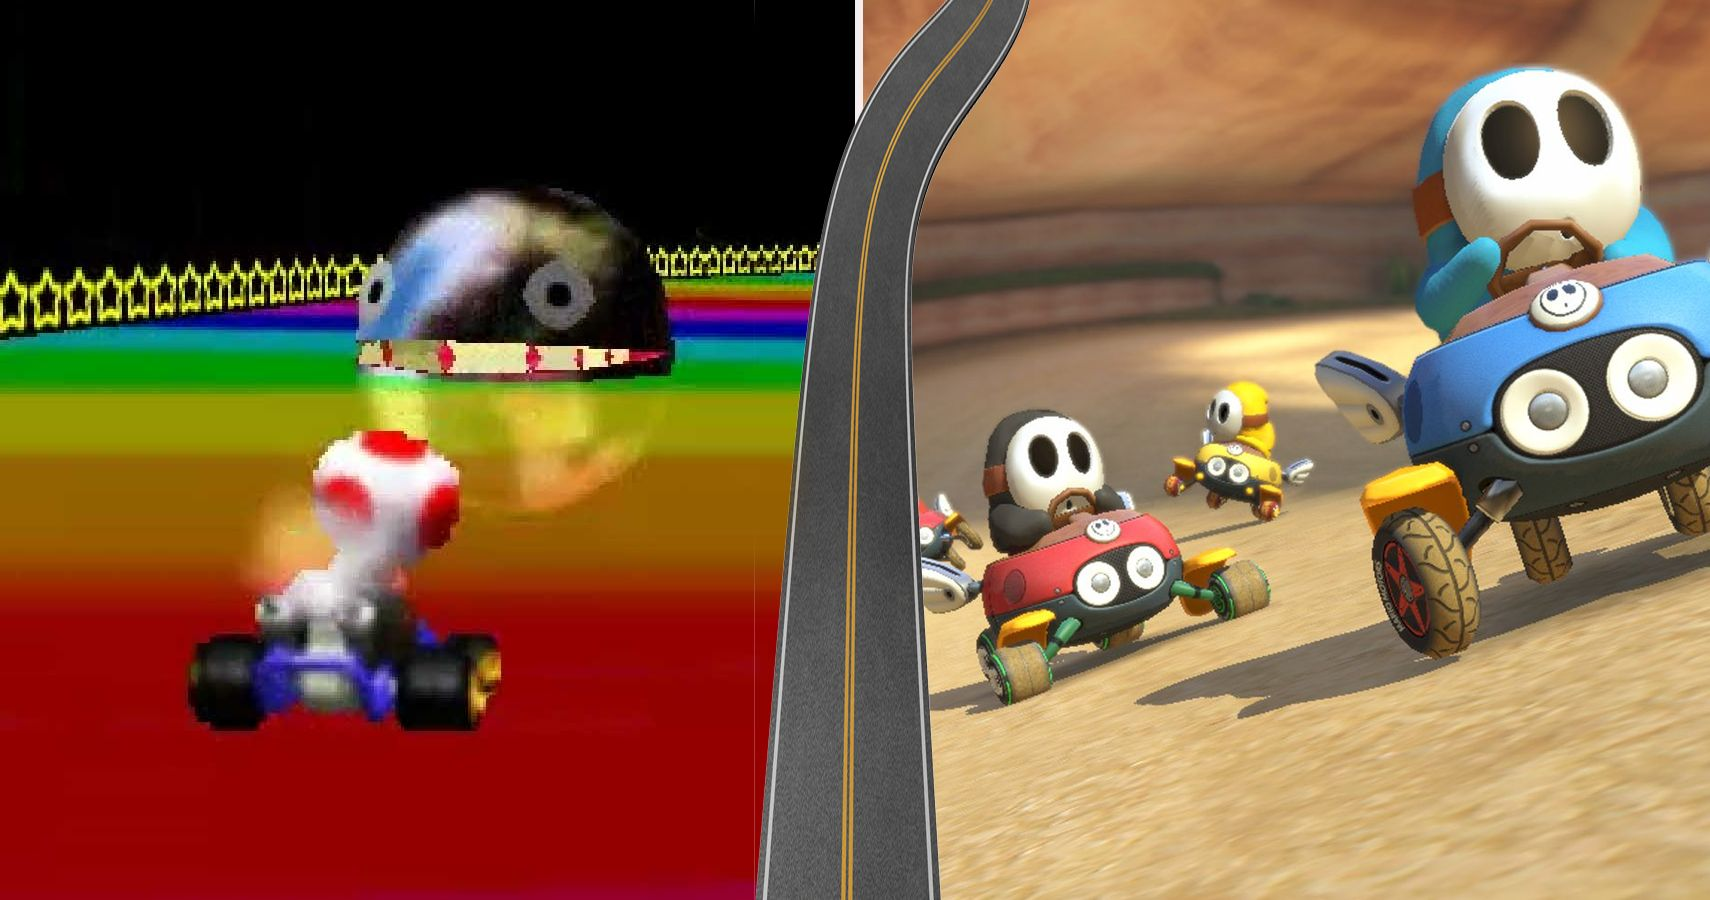 The 15 Most Useful Mario Kart Shortcuts And 15 Hidden Ones No One Finds